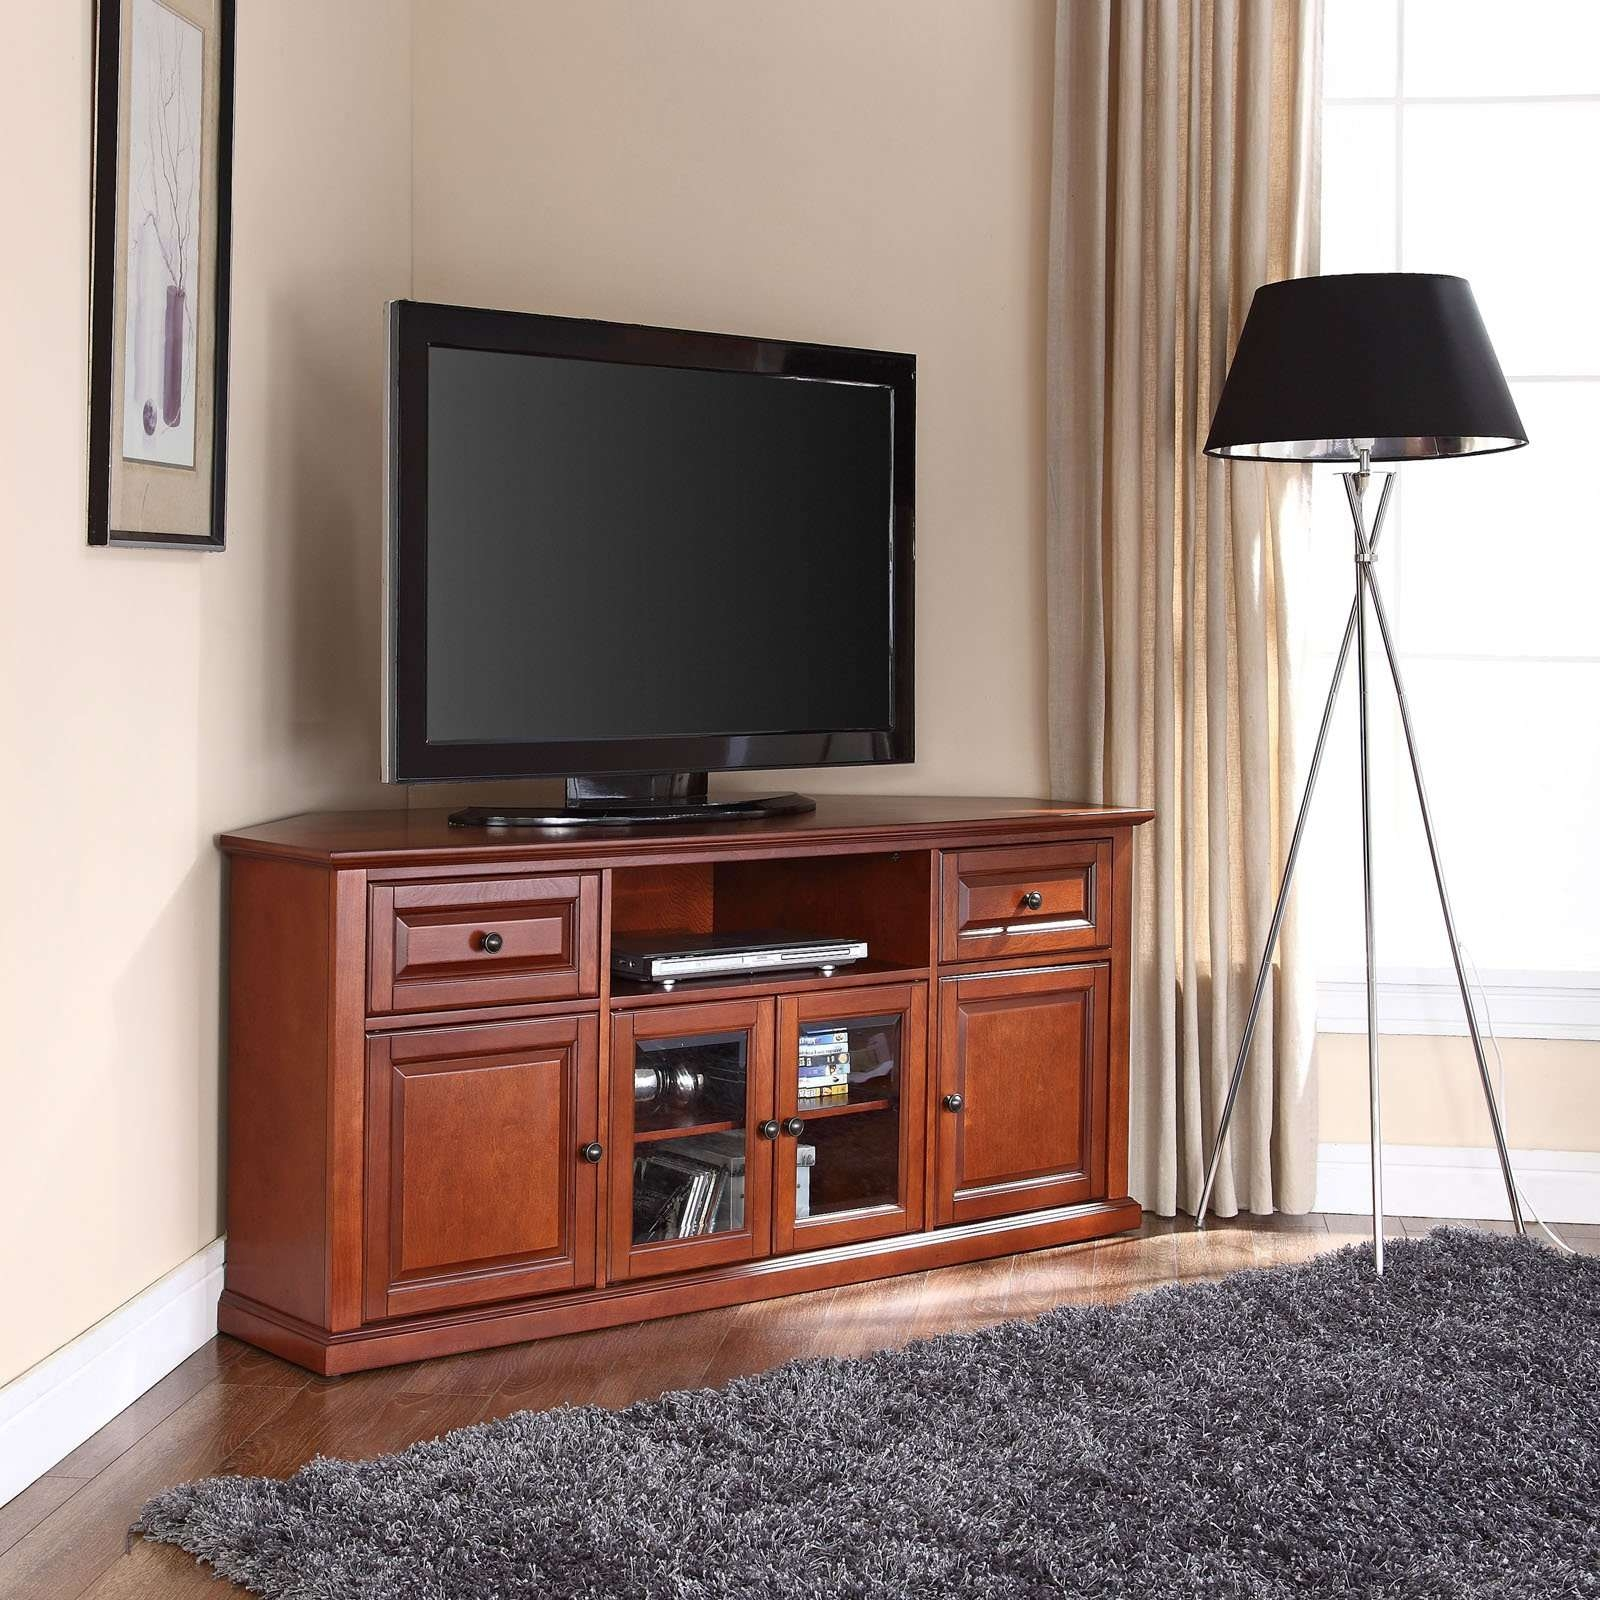 Tv Stand : Tvsc 55 Large Reproduction Tv Cabinet Mahogany Yew Oak Within Mahogany Corner Tv Cabinets (View 20 of 20)